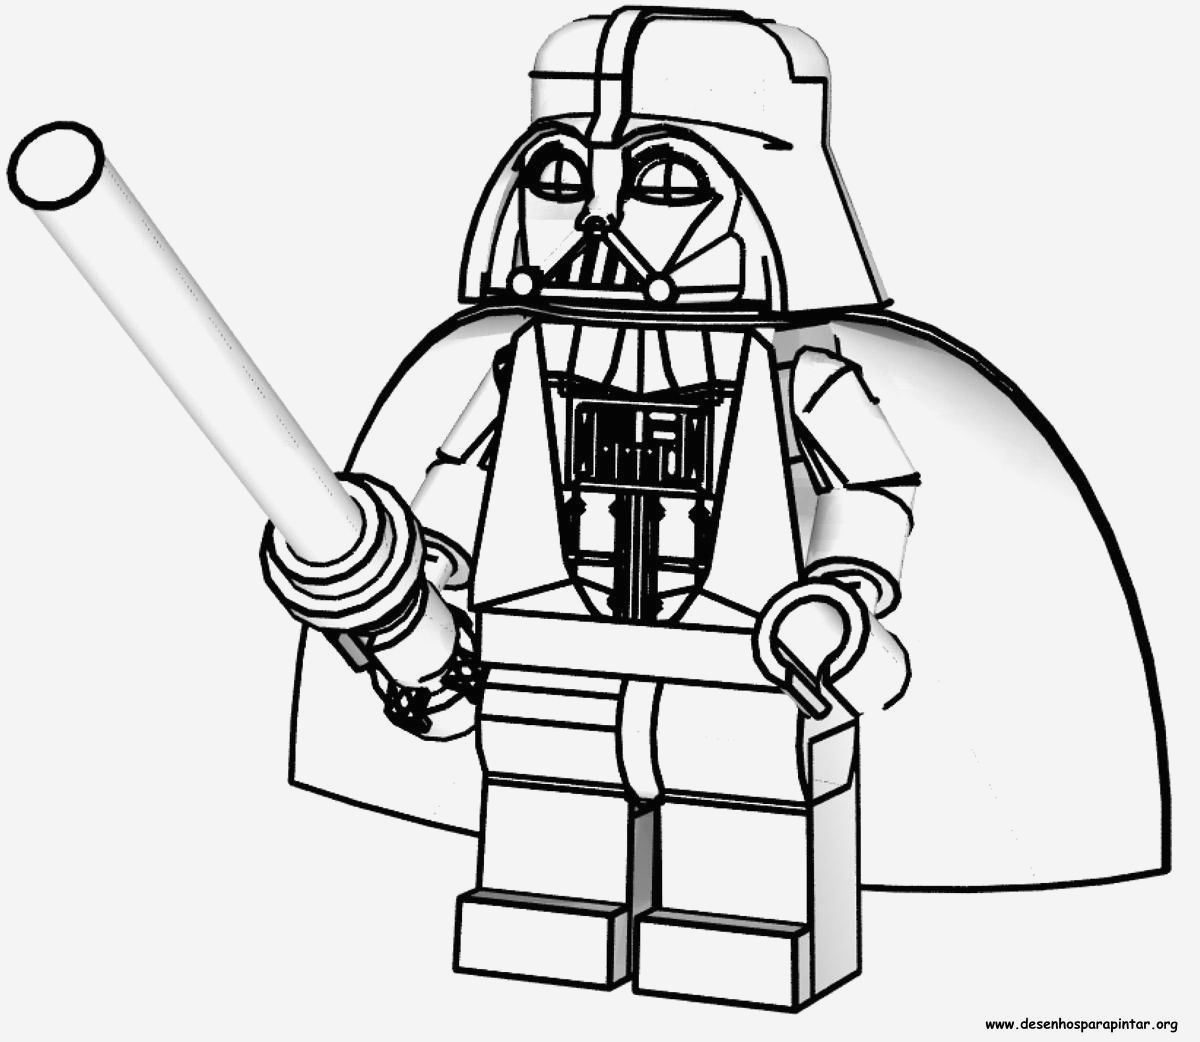 Coloriage Lego Star Wars Elegant Coloriage Lego Batman Les Beaux Dessins De Meilleurs Of Coloriage Lego Star Wars